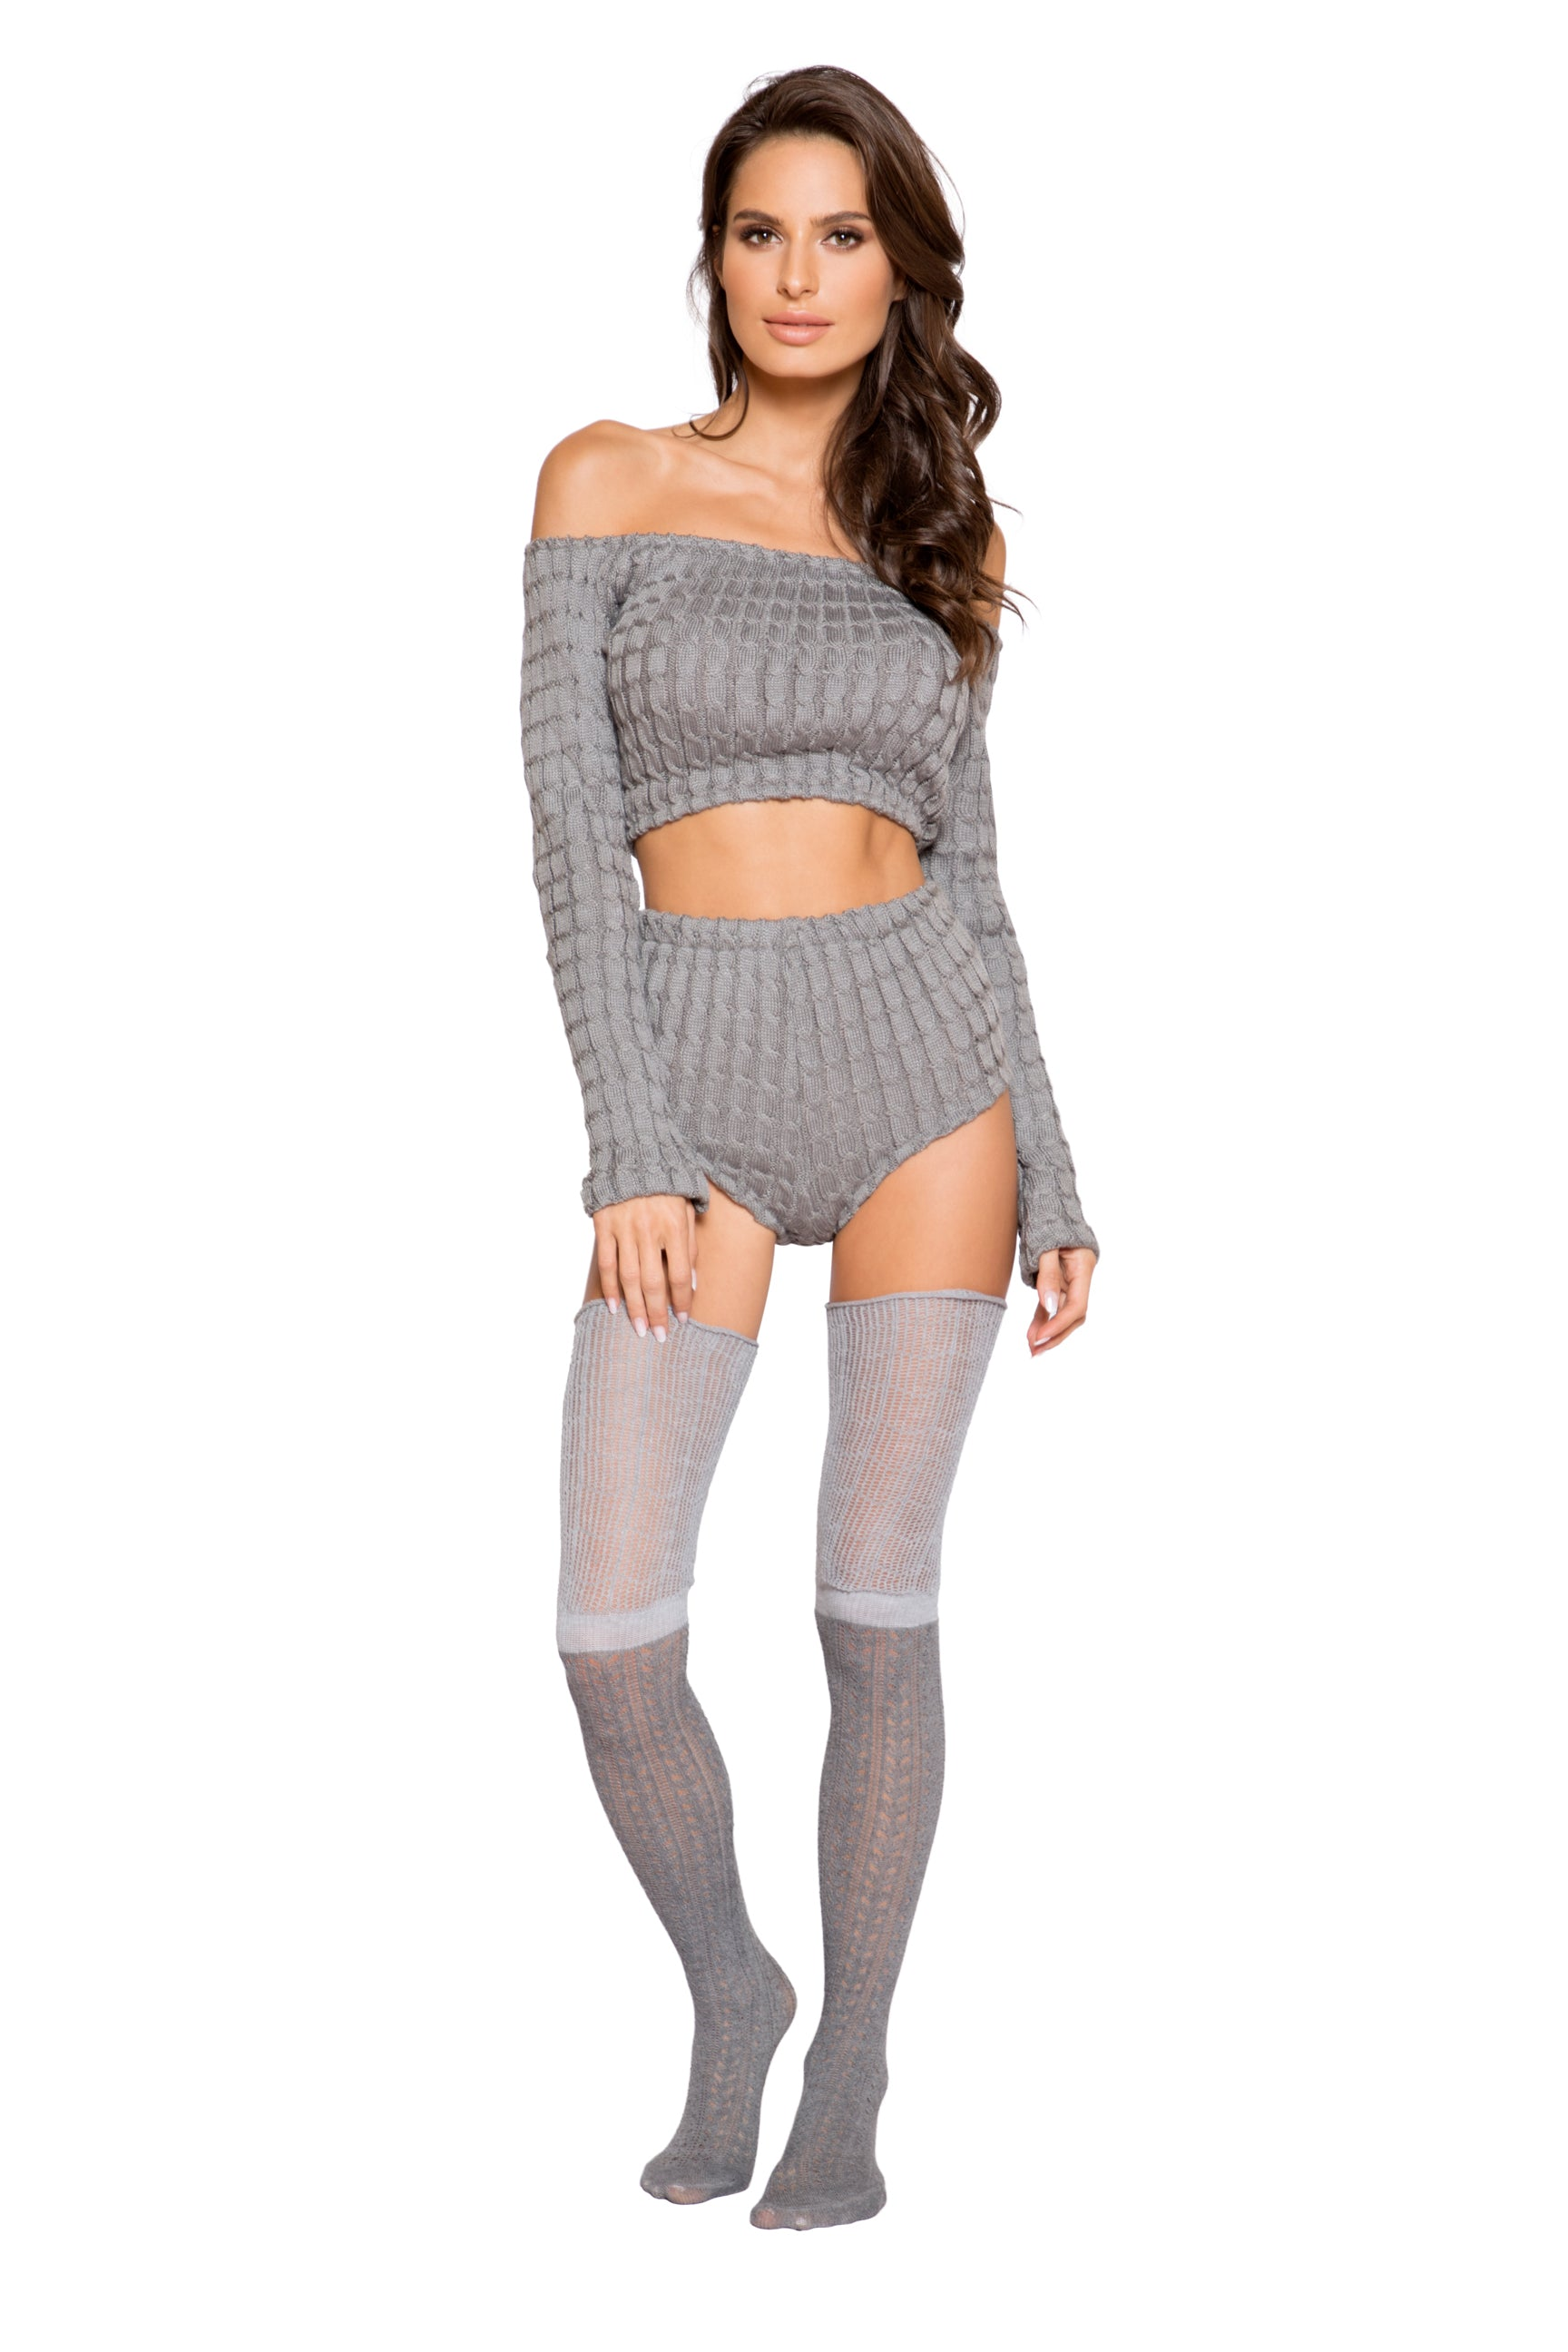 LI287 Roma Confidential Wholesale Lingerie Grey Cozy and Comfy Pajama Short Set